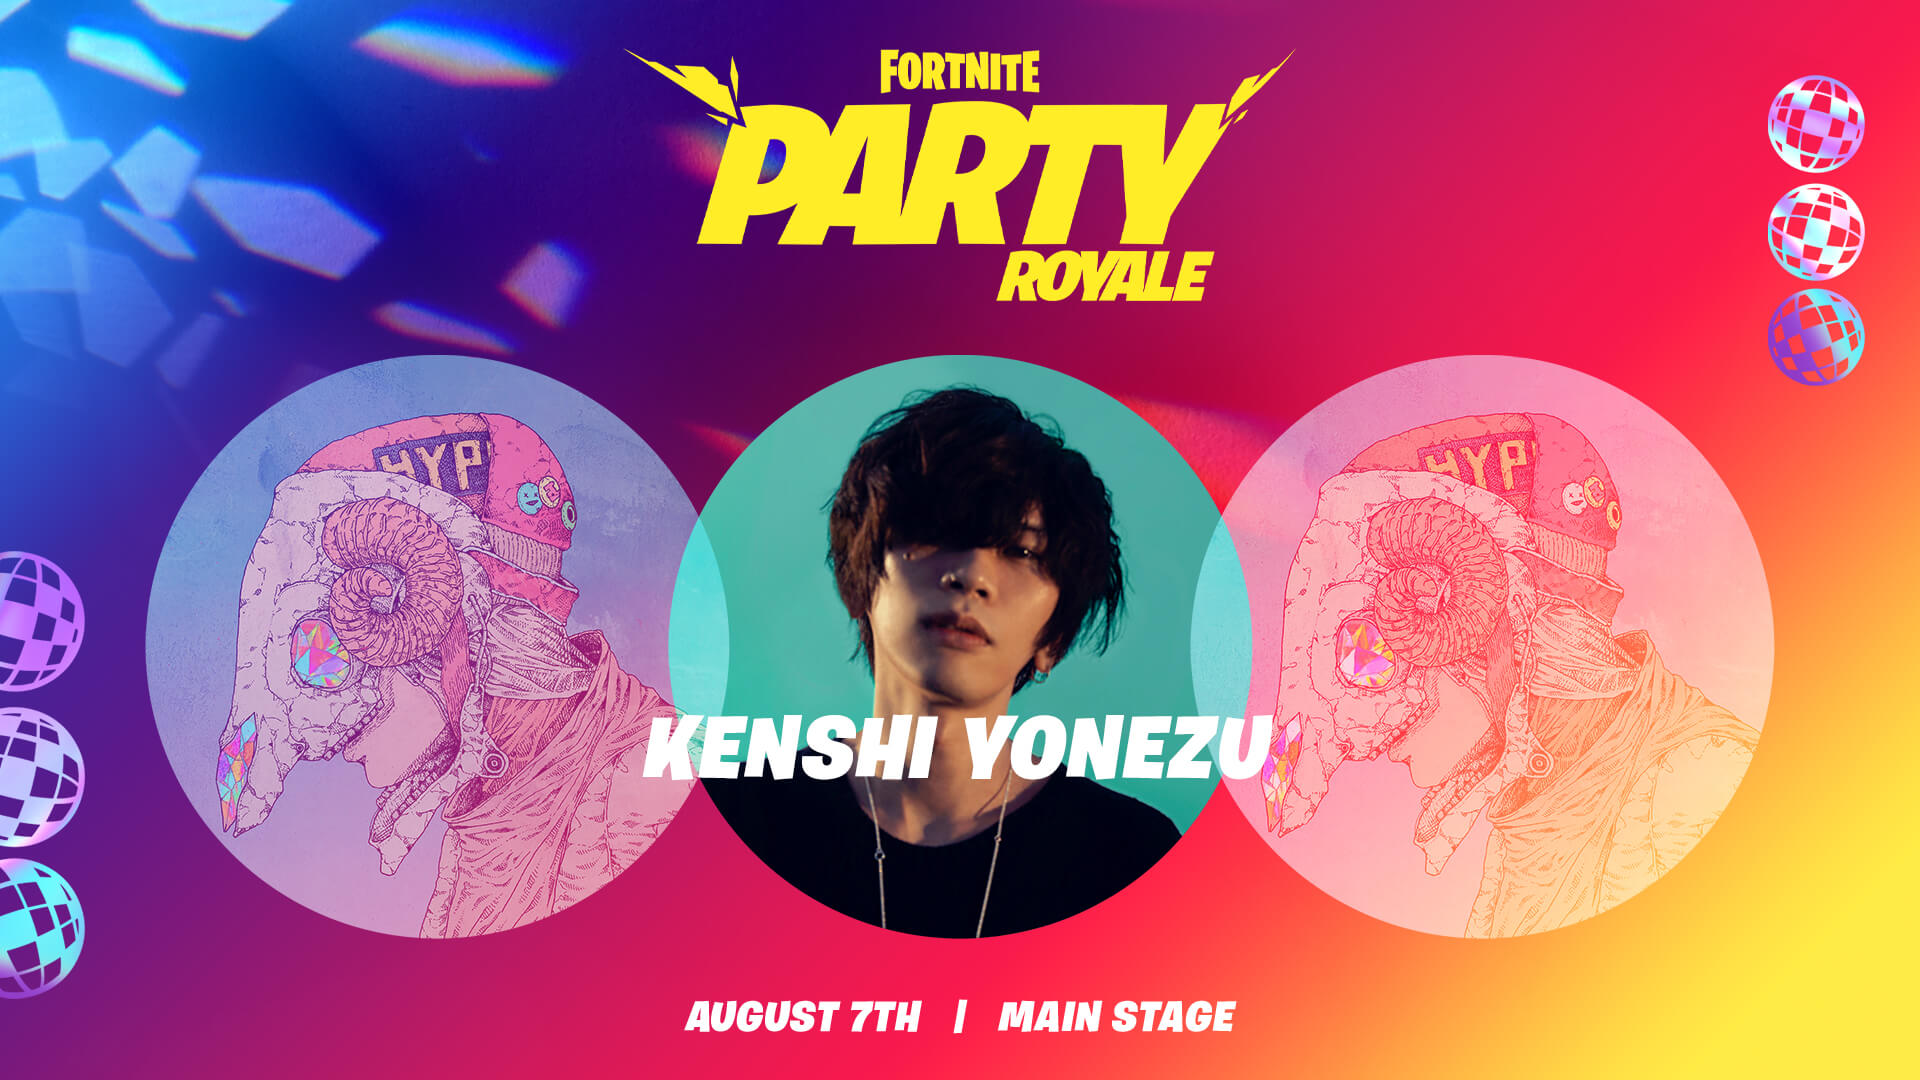 Kenshi Yonezu Fortnite Party Royale